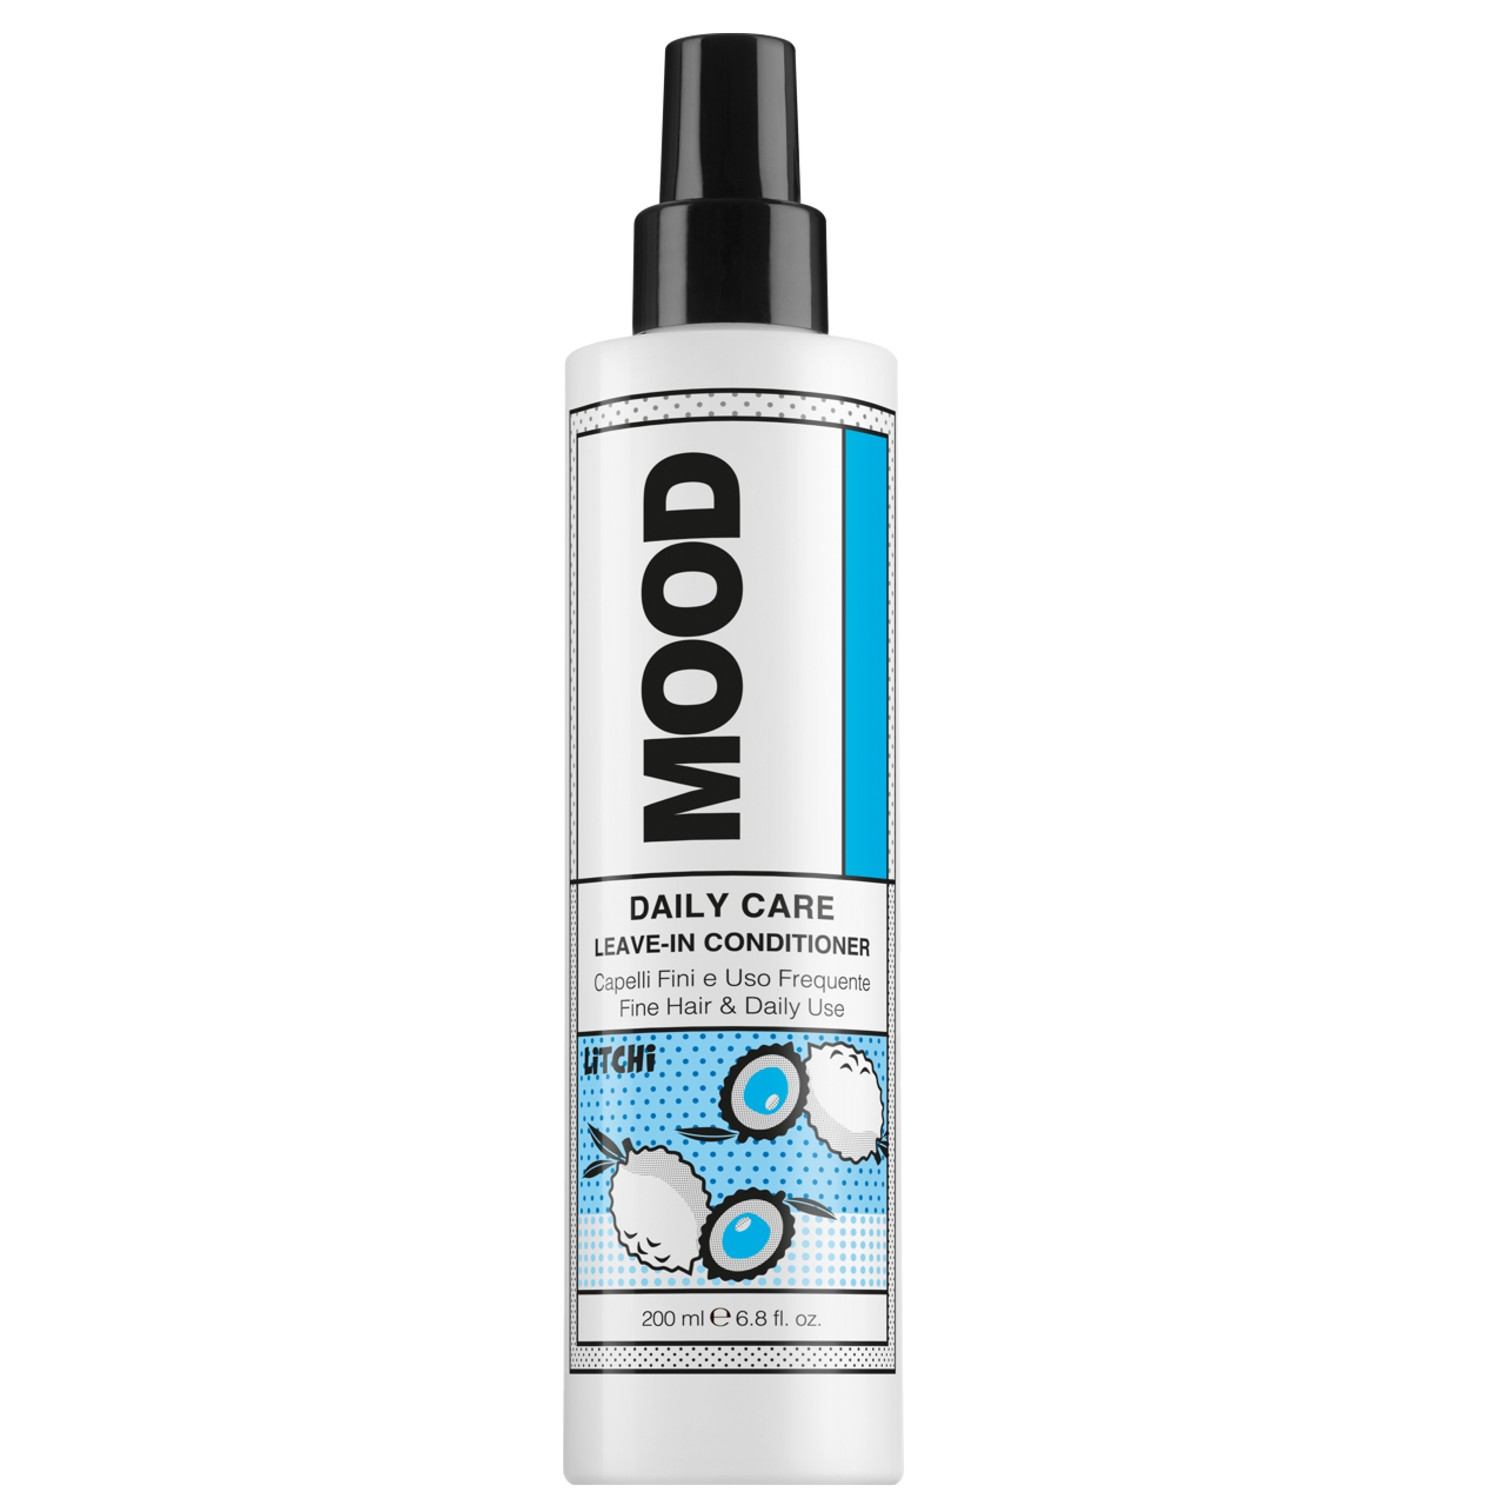 MOOD Daily Care Leave in Conditioner 200 ml